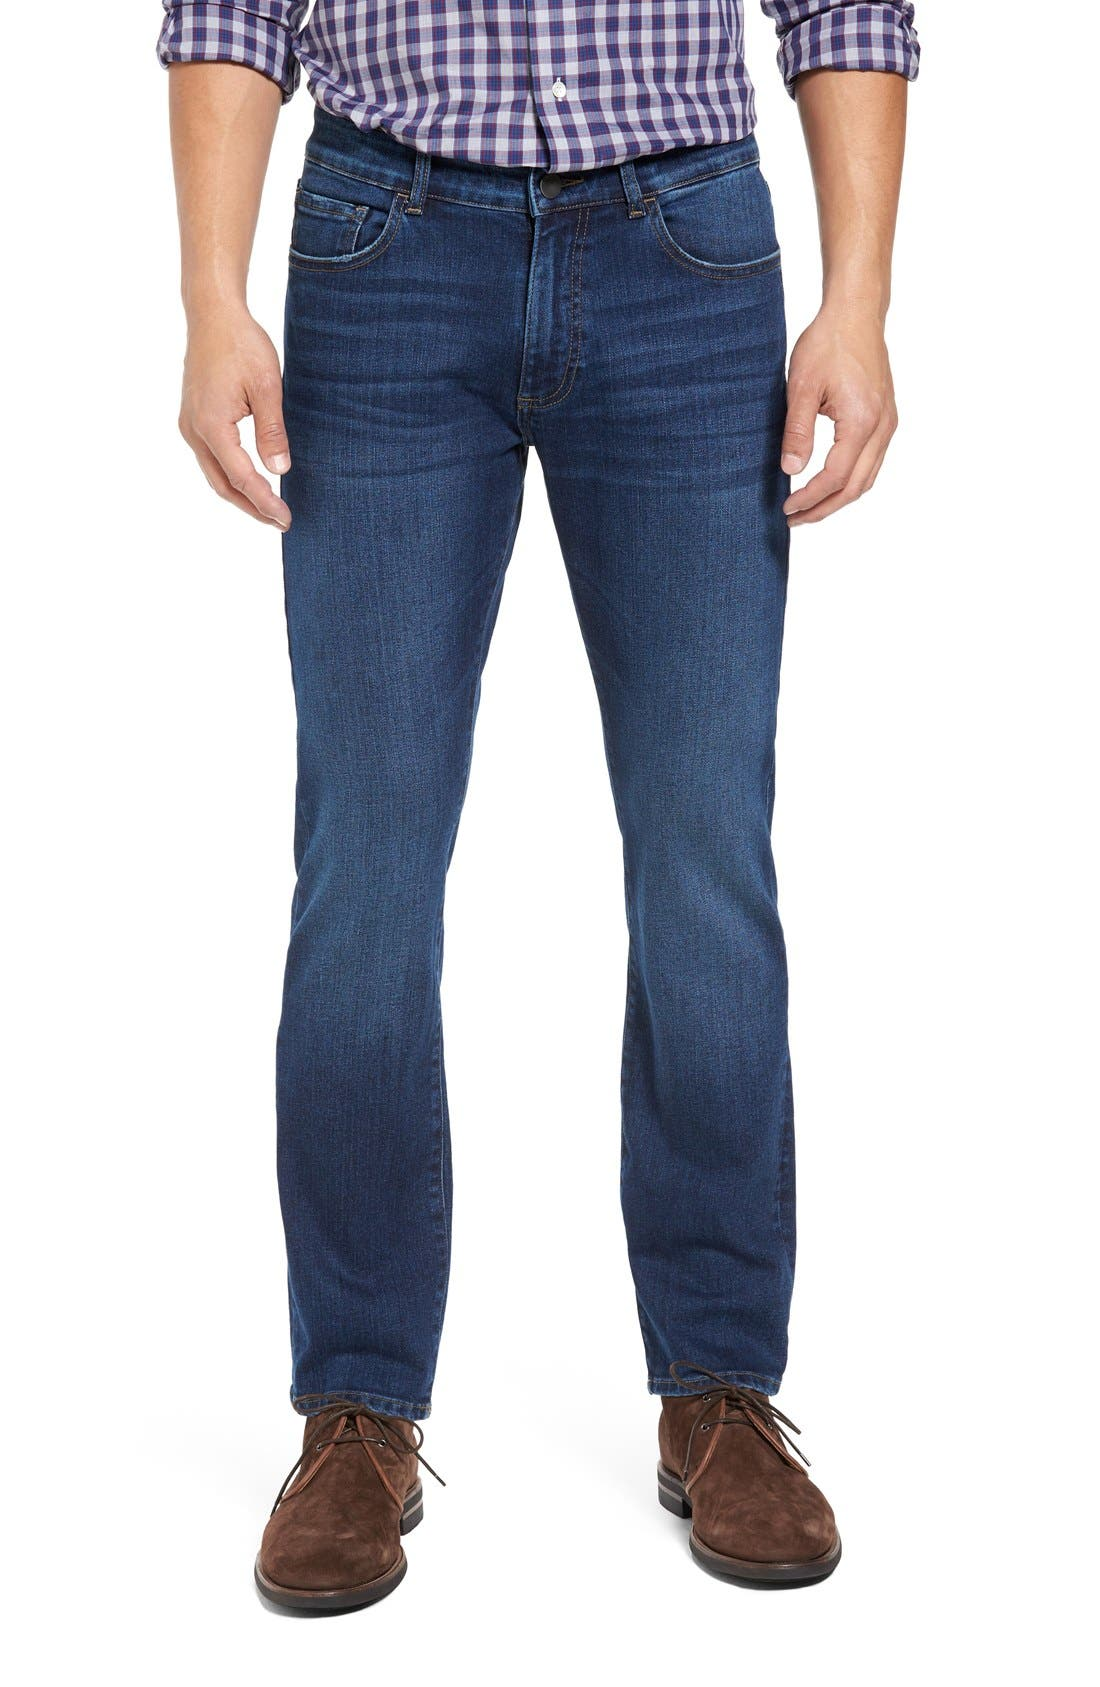 Russel Slim Straight Fit Jeans,                             Main thumbnail 1, color,                             405